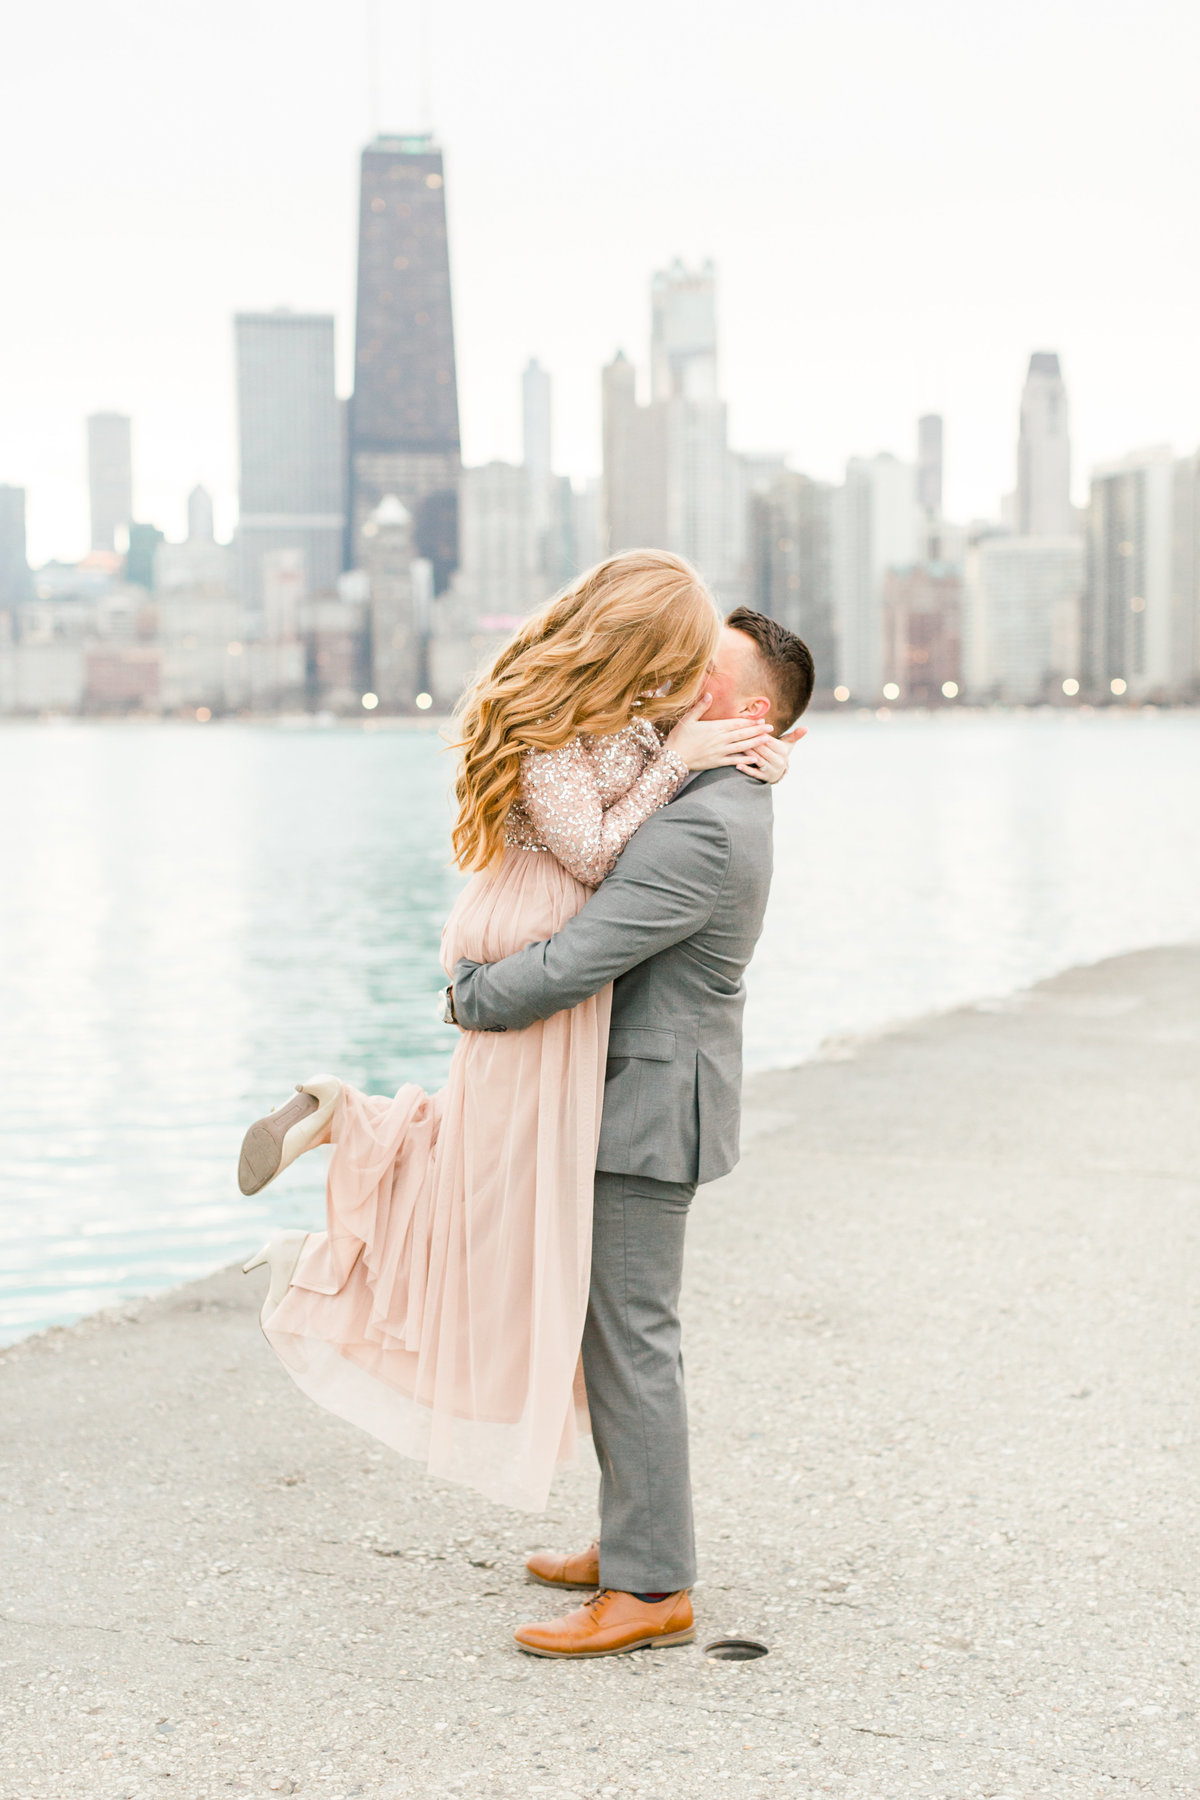 lindsey-taylor-photography-north-avenue-beach-chicago-engagement-photographer18